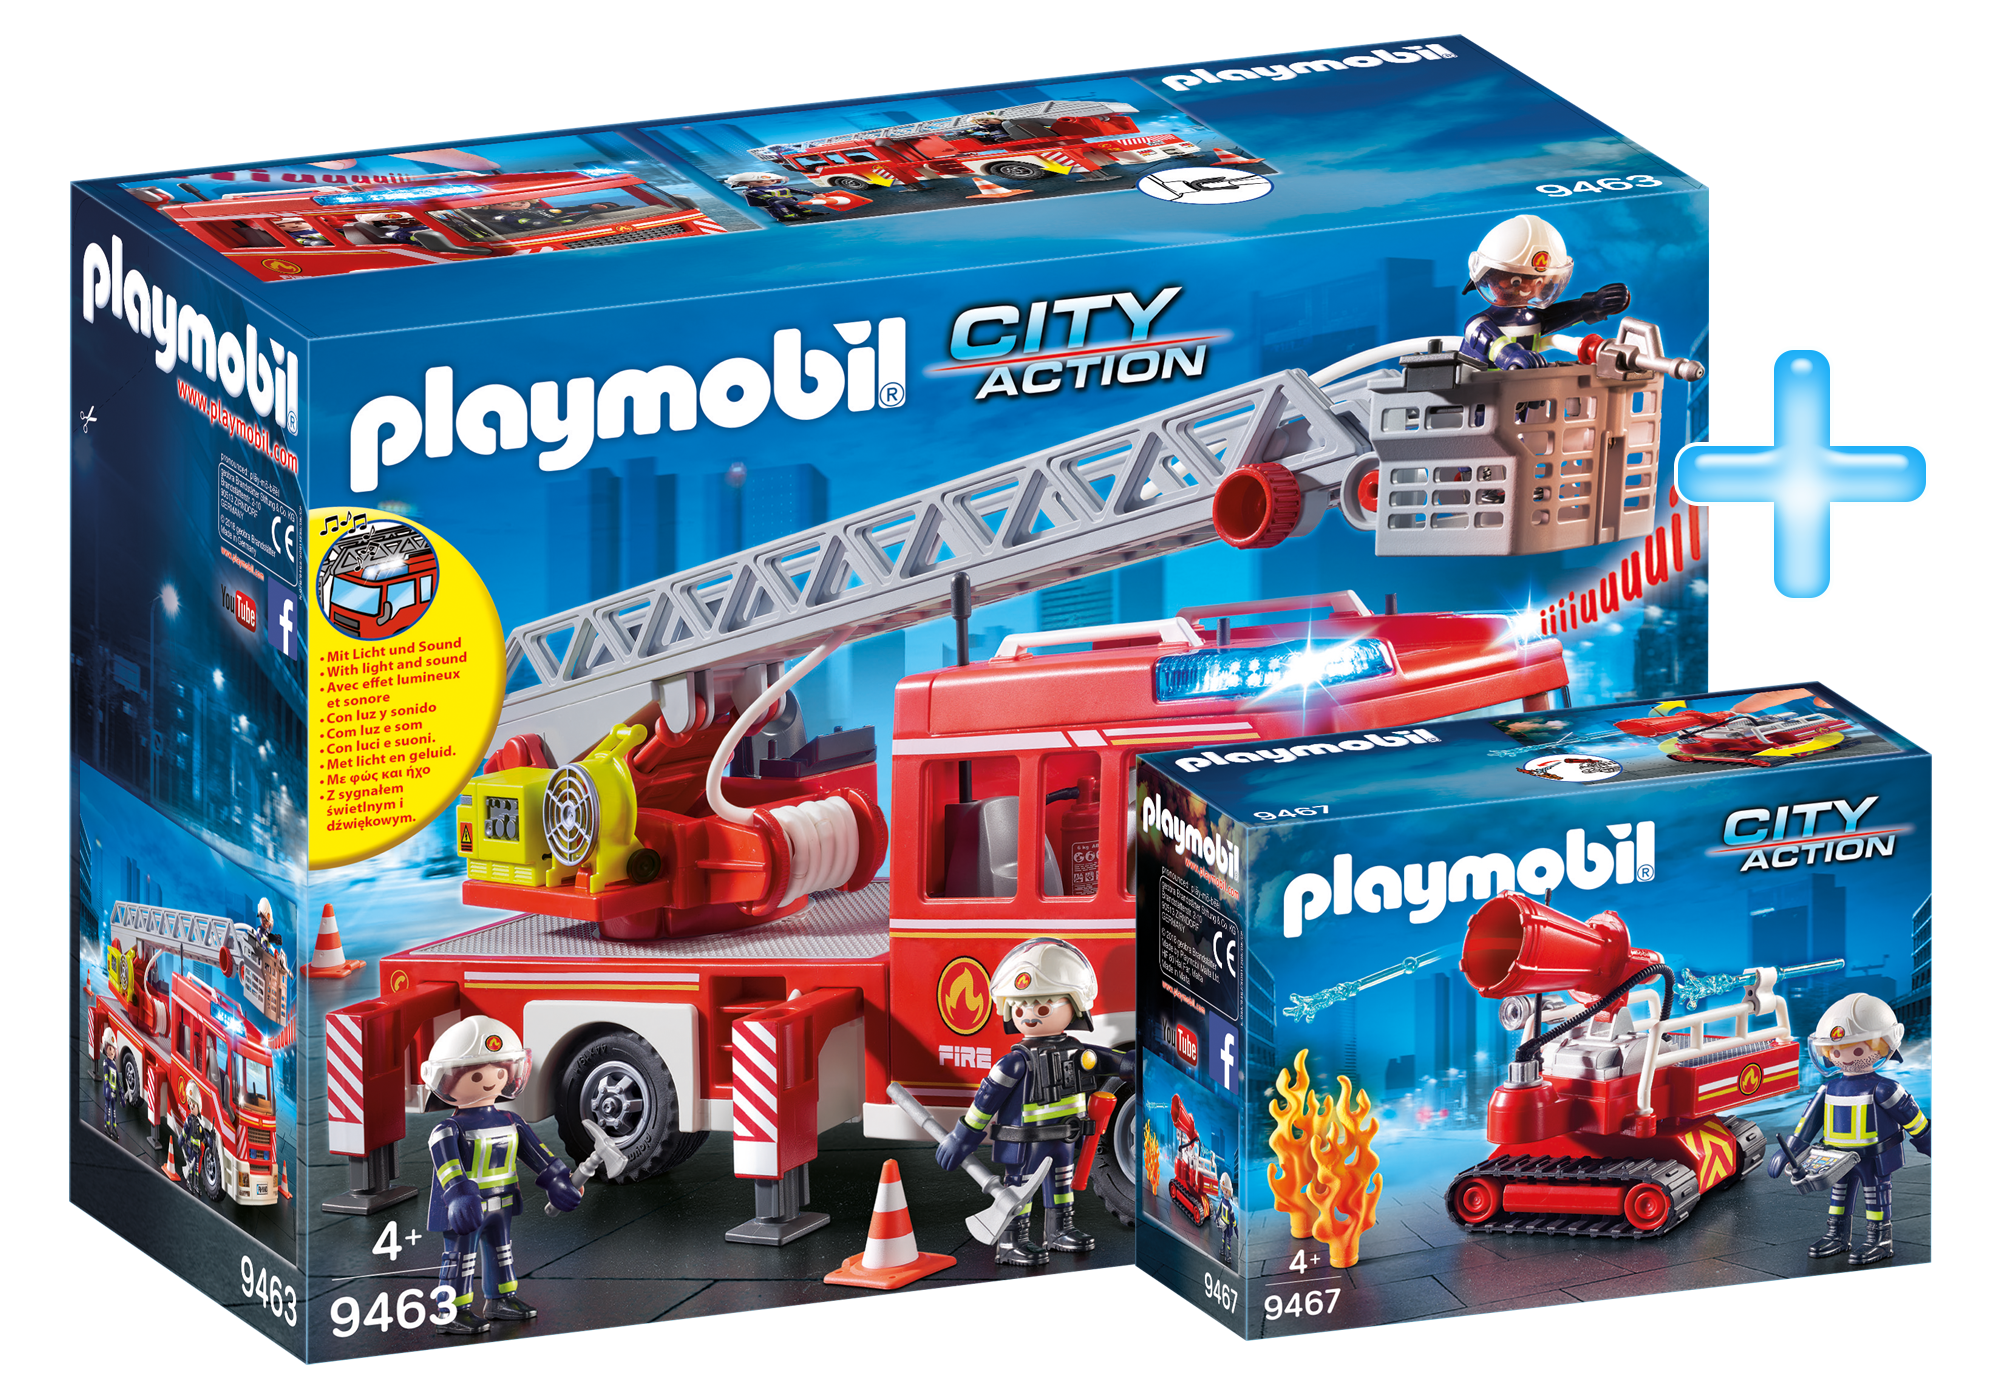 http://media.playmobil.com/i/playmobil/DE1812J_product_detail